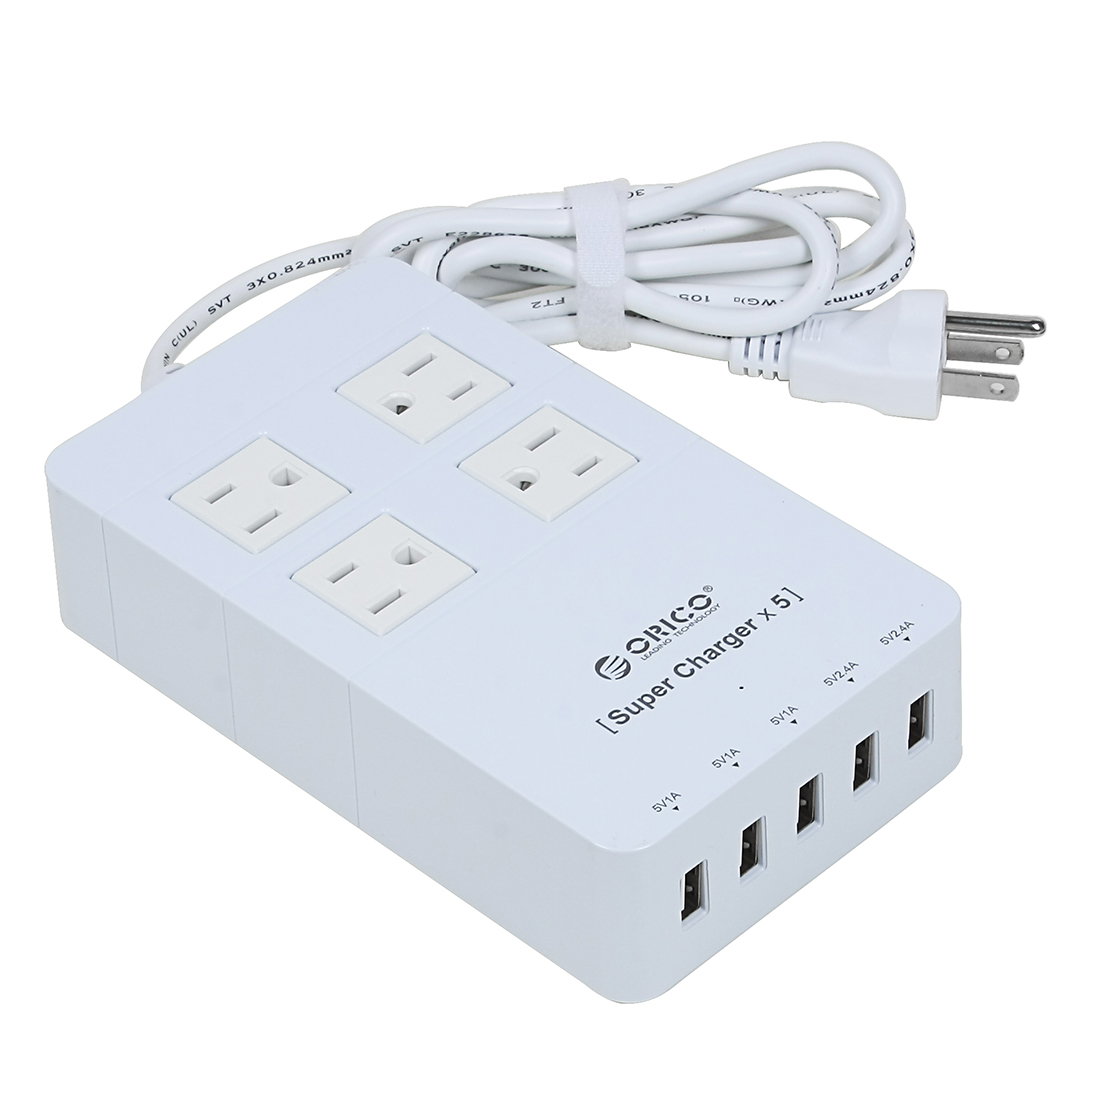 AC100-250V US Plug 4 US Outlet 5 USB Ports Surge Protector Power Strip 5ft Cable White